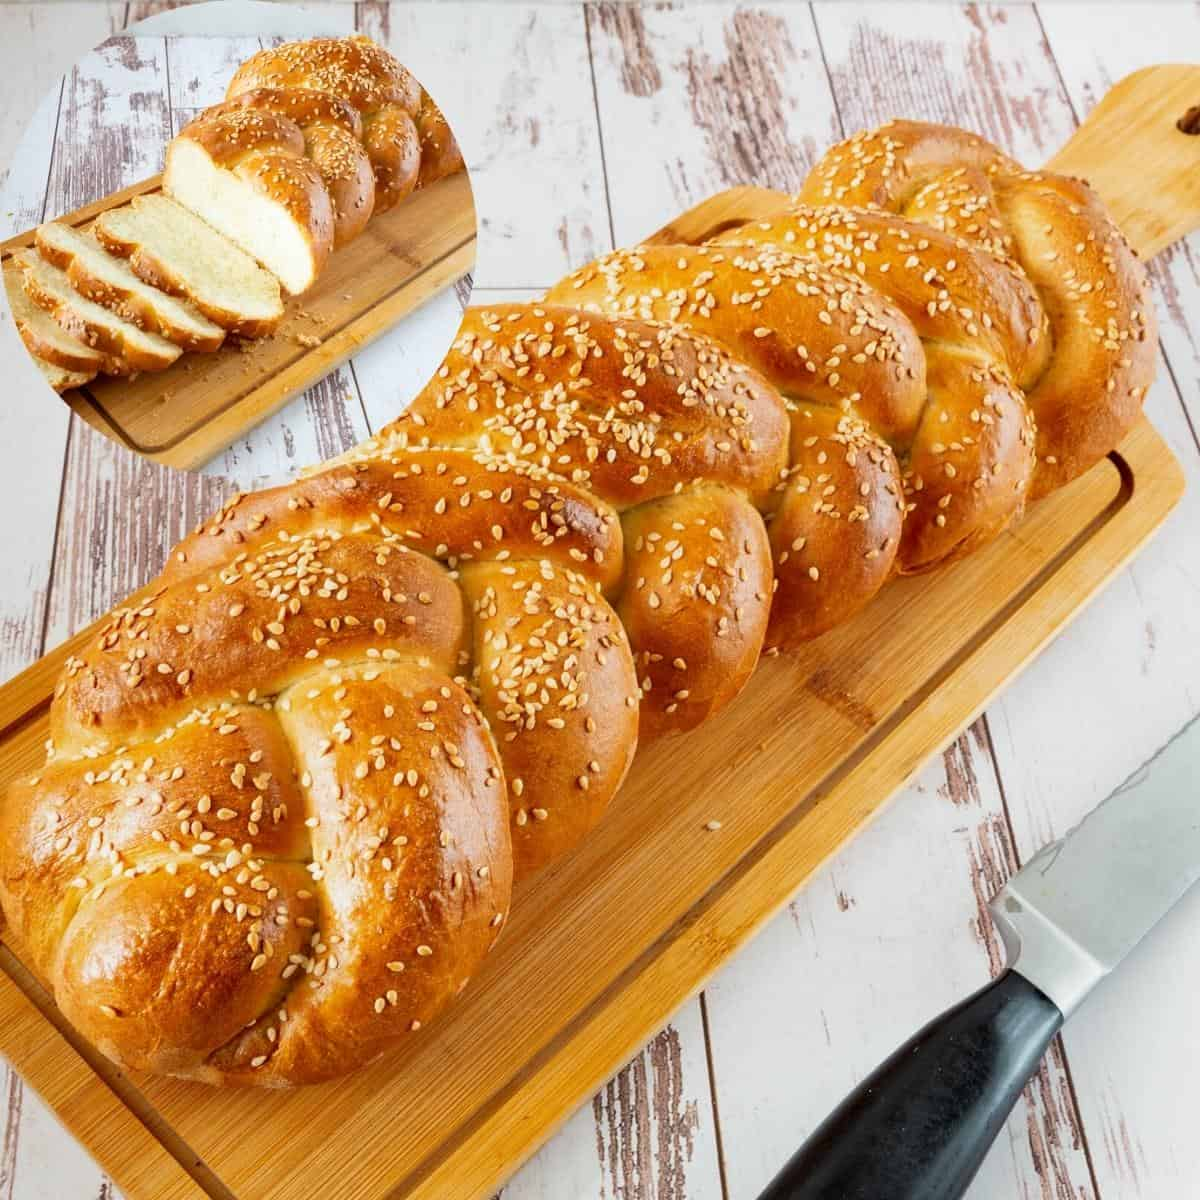 Five braided challah on a wooden board.